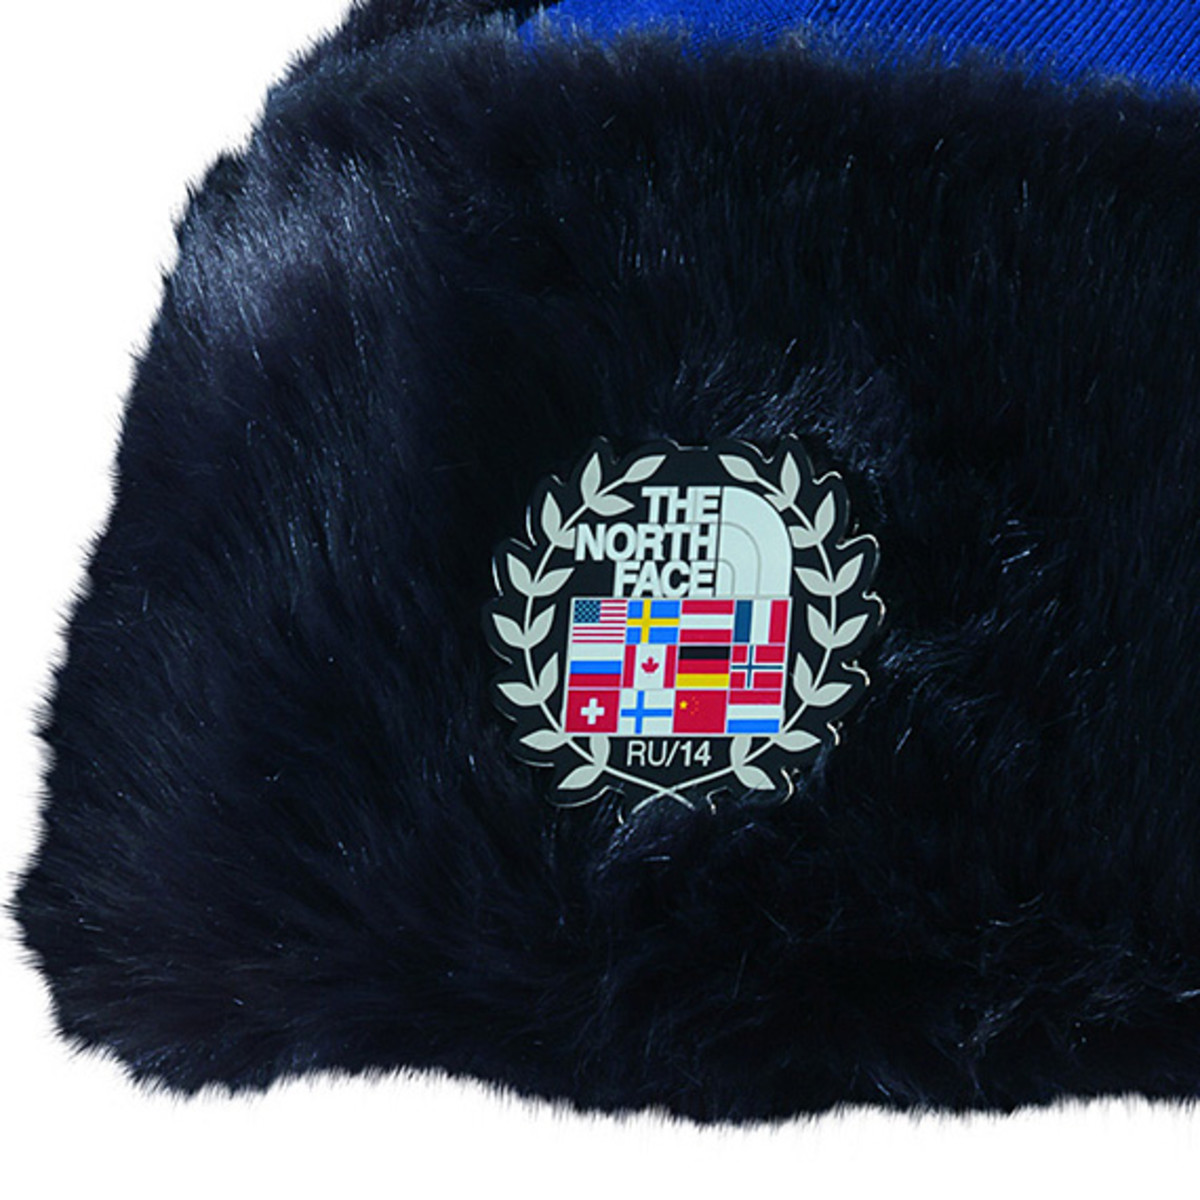 the-north-face-2014-winter-olympics-sochi-team-usa-villagewear-collection-accessories-02a